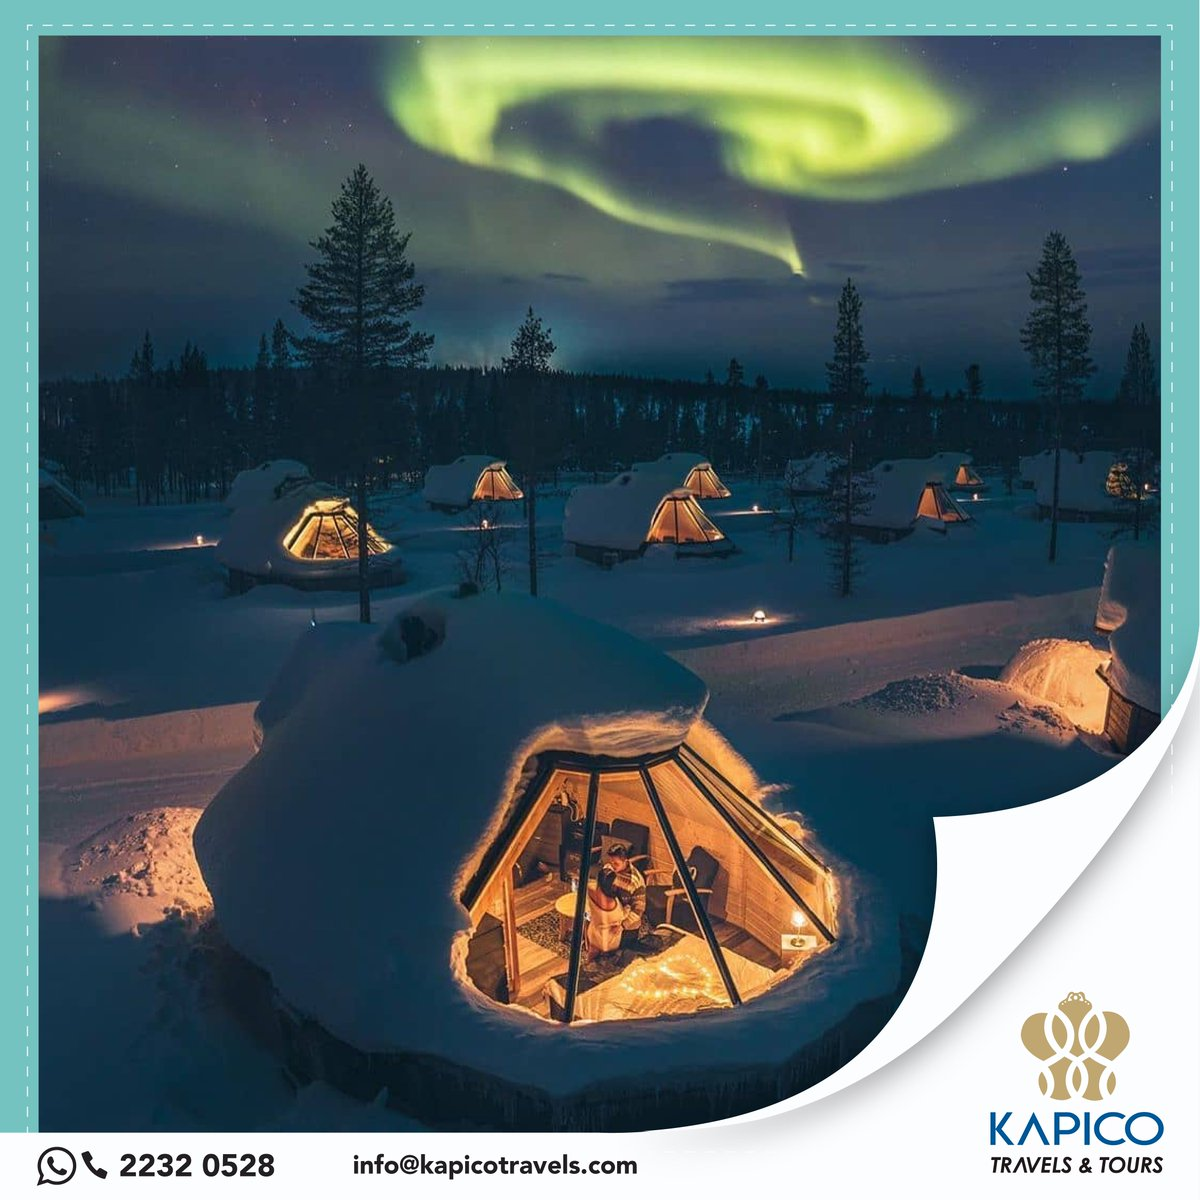 #Lapland is #Finland's northernmost region, a sparsely populated area bordering Sweden, Norway, Russia, and the Baltic Sea.  #Go Later  #kapico #kapicotravels #golater #travelling #finlandbeauty #beautifuldestinations #bestdestinations  #bestlocations #travellers #kuwait https://t.co/MO8nwlzrw7